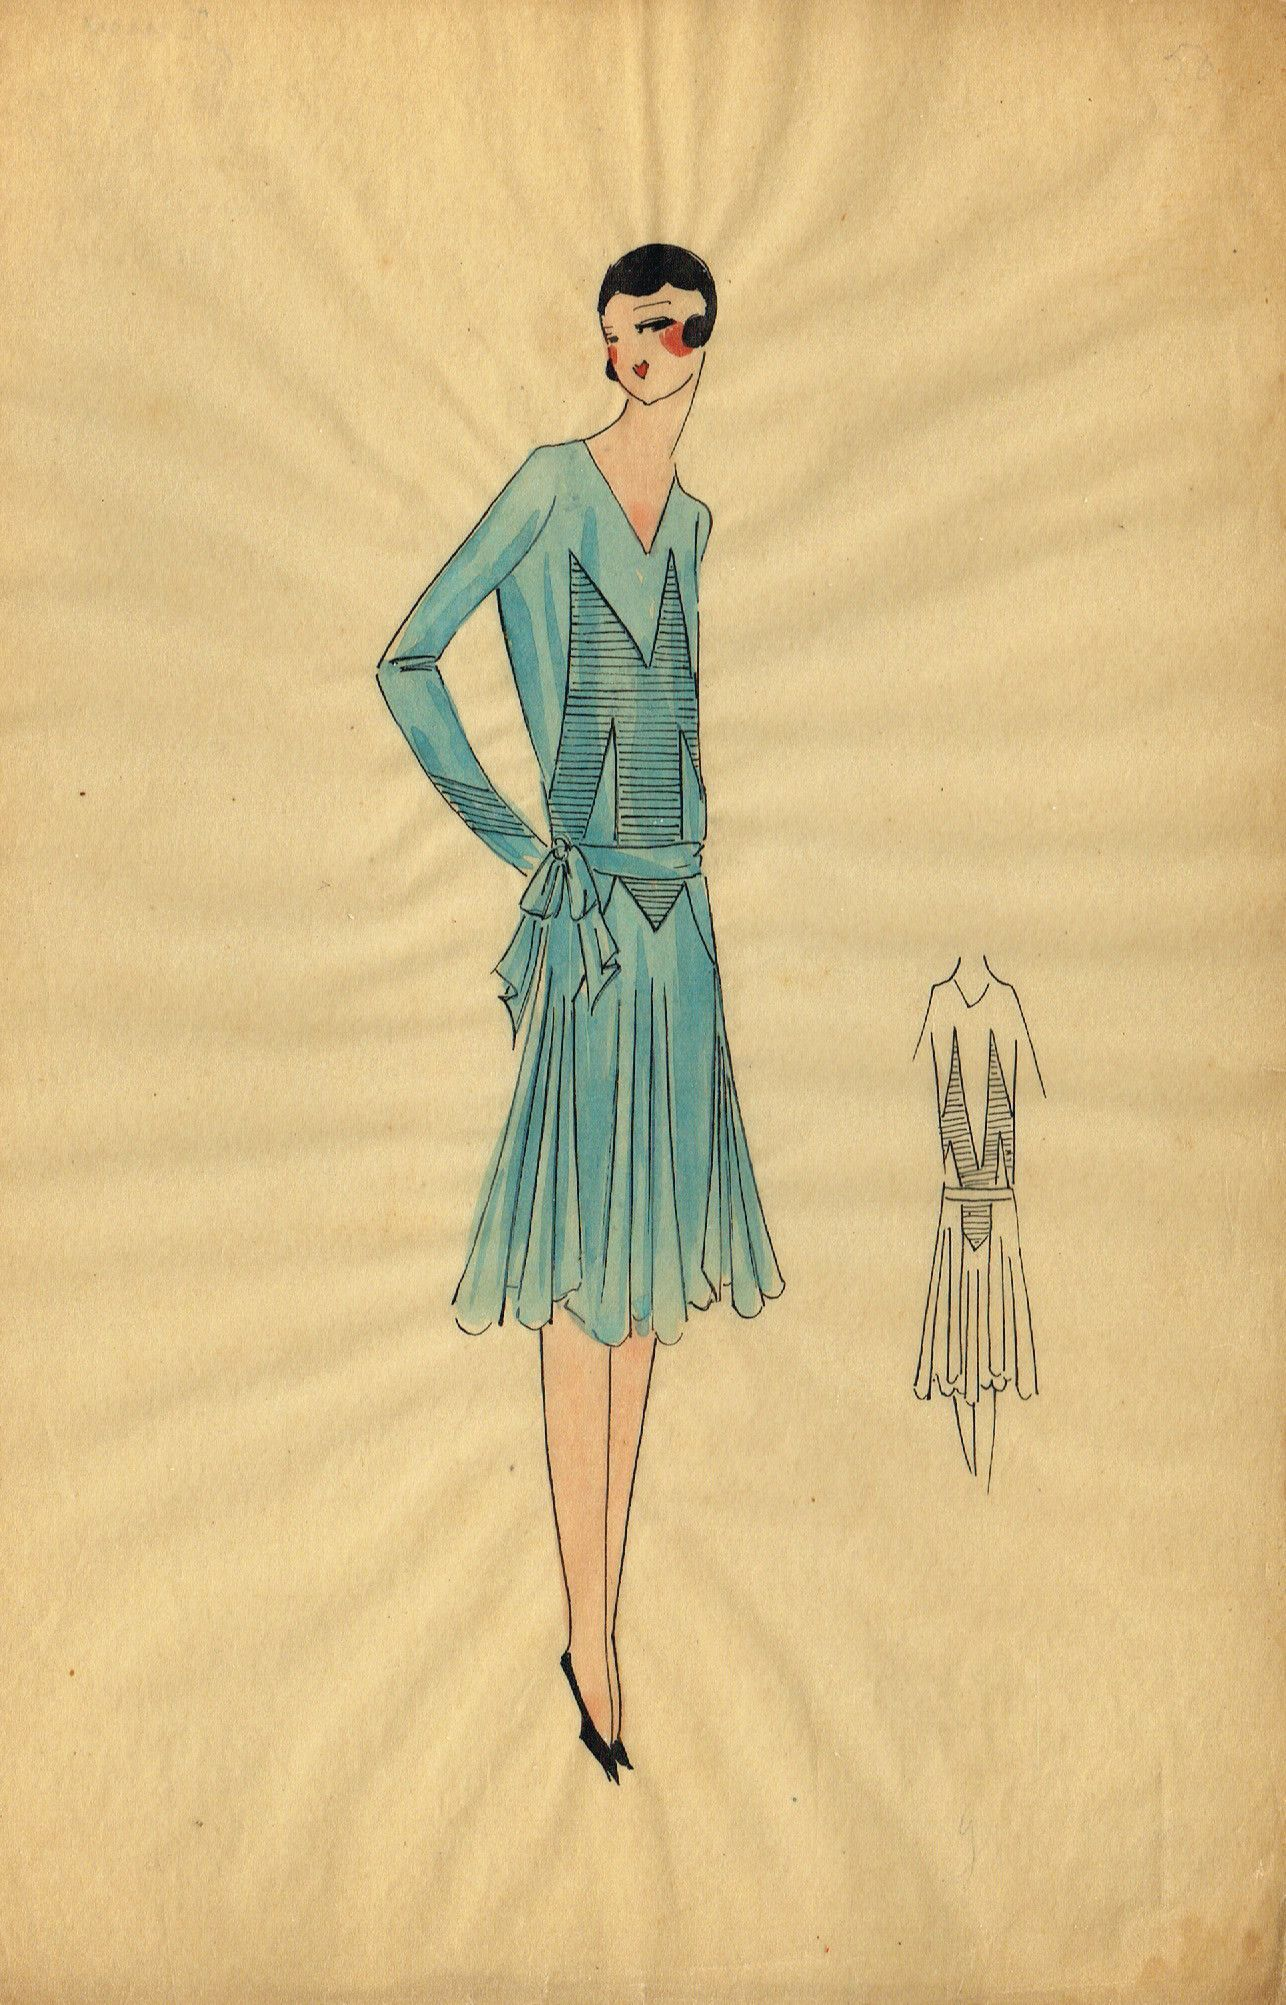 1920s fashion in paris 1920s Fashion: Styles of The Roaring Twenties